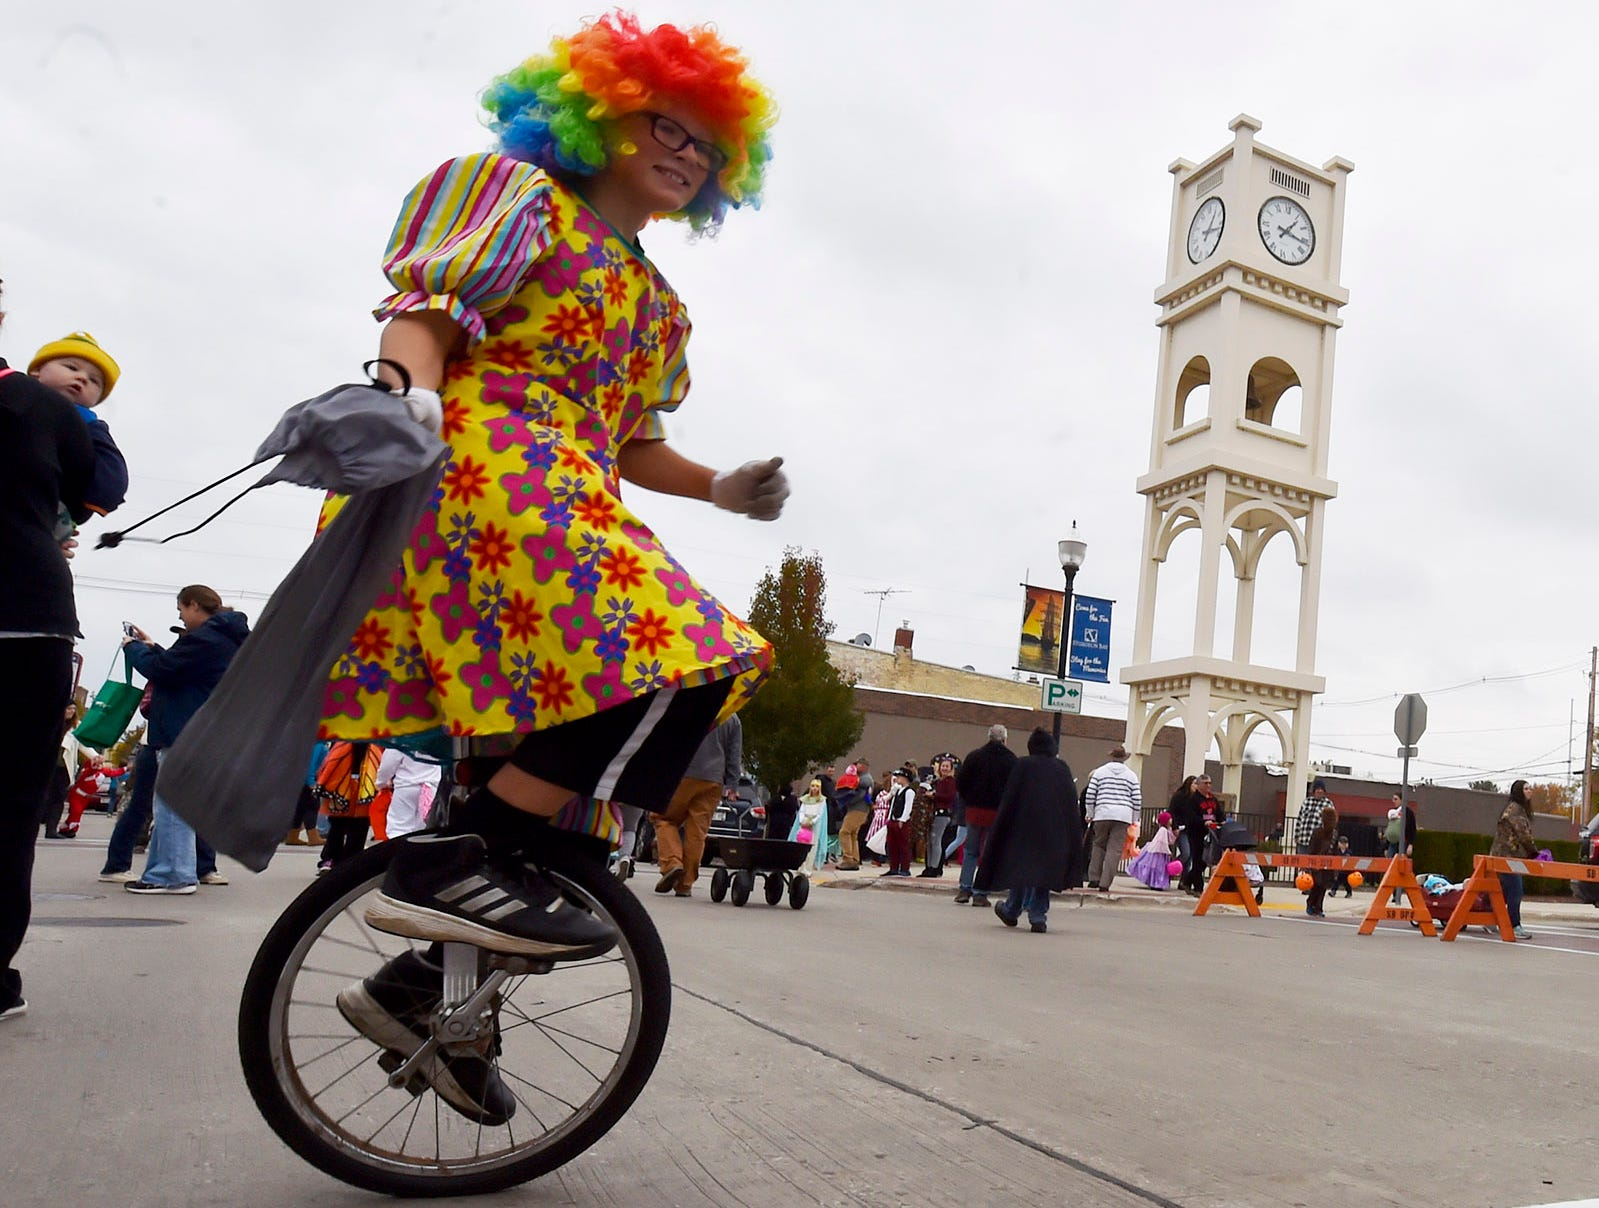 Tristan Brilla rides a unicycle at the Thrills on Third costume parade on Saturday, Oct. 27, 2018, in Sturgeon Bay. Tina M. Gohr/USA TODAY NETWORK-Wisconsin